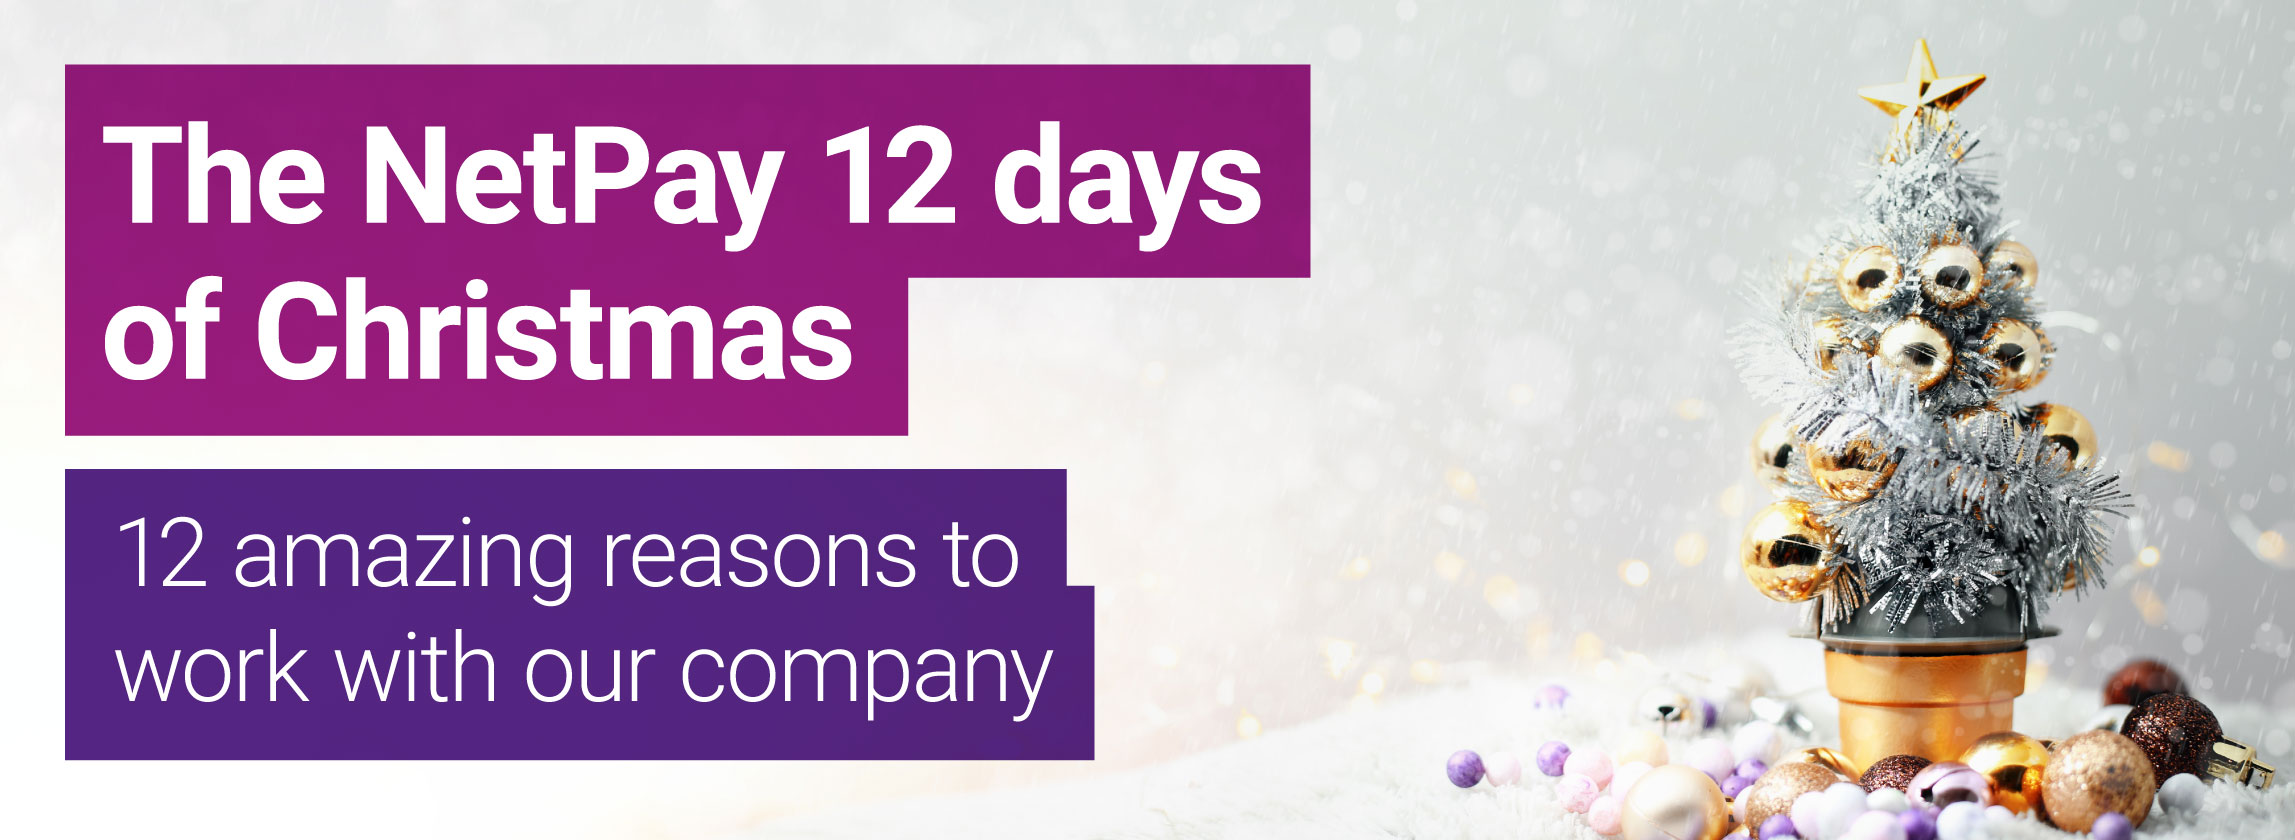 12 days of christmas why work with NetPay